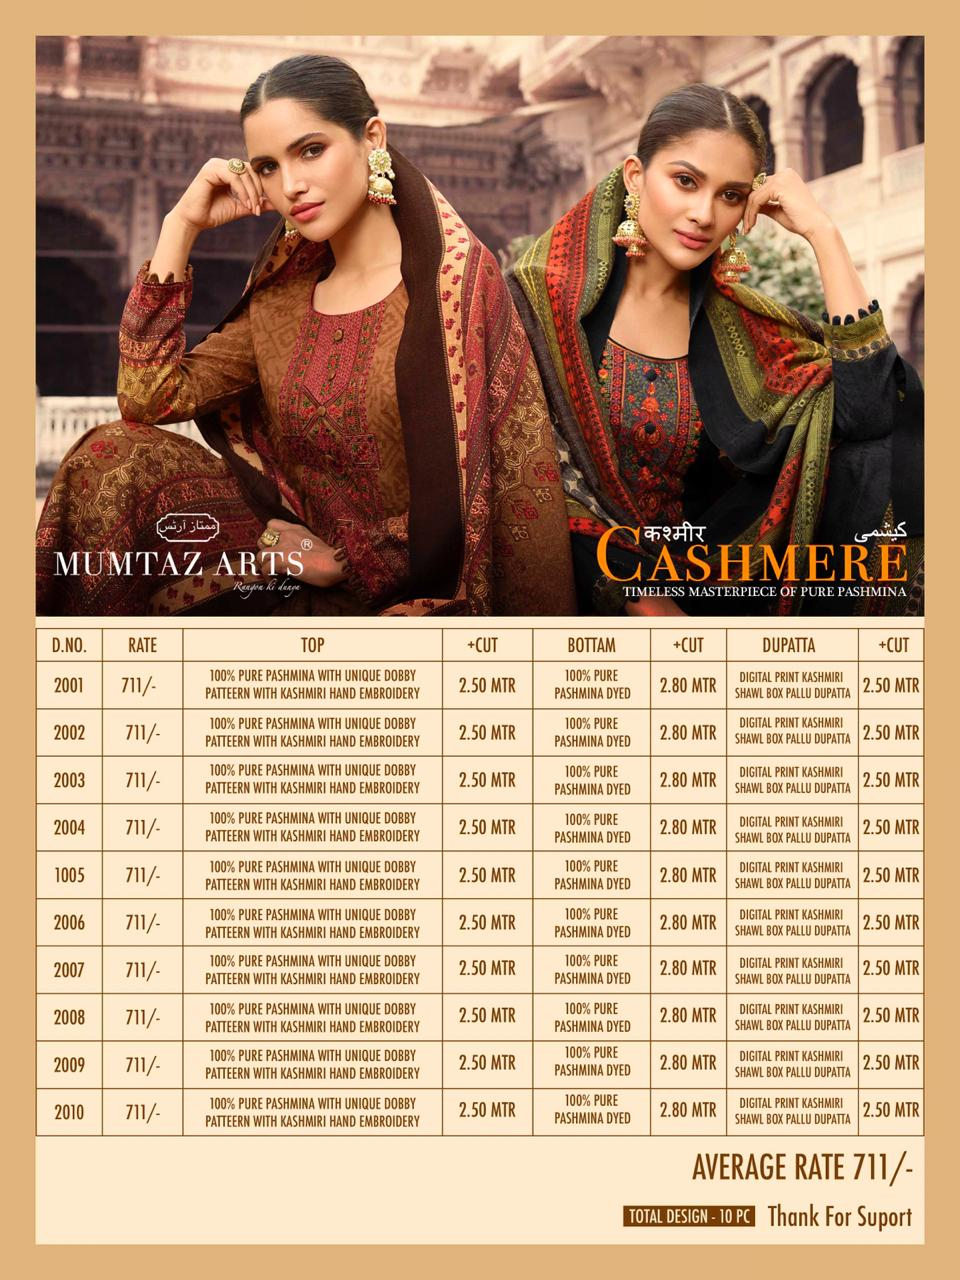 Mumtaz Arts Cashmere Pashmina Salwar Suit Wholesale Catalog 10 Pcs 16 - Mumtaz Arts Cashmere Pashmina Salwar Suit Wholesale Catalog 10 Pcs